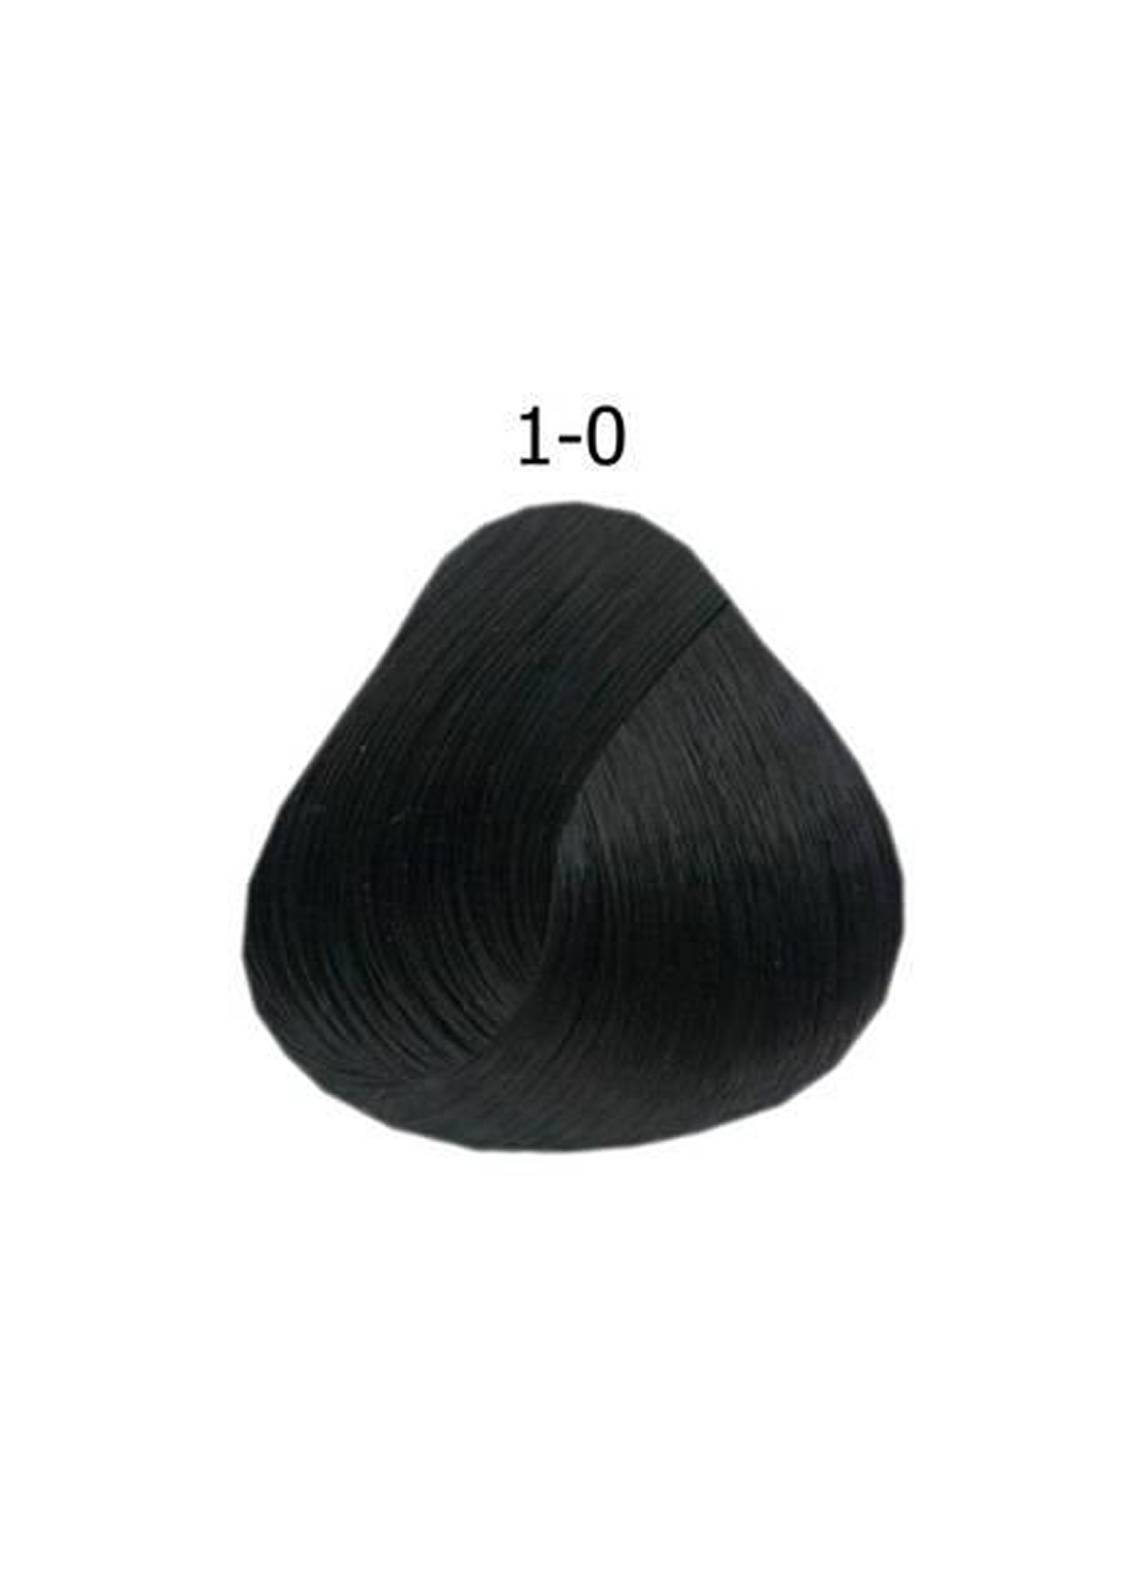 Schwarzkopf Igora Royal Natural Hair Color - Black 1-0